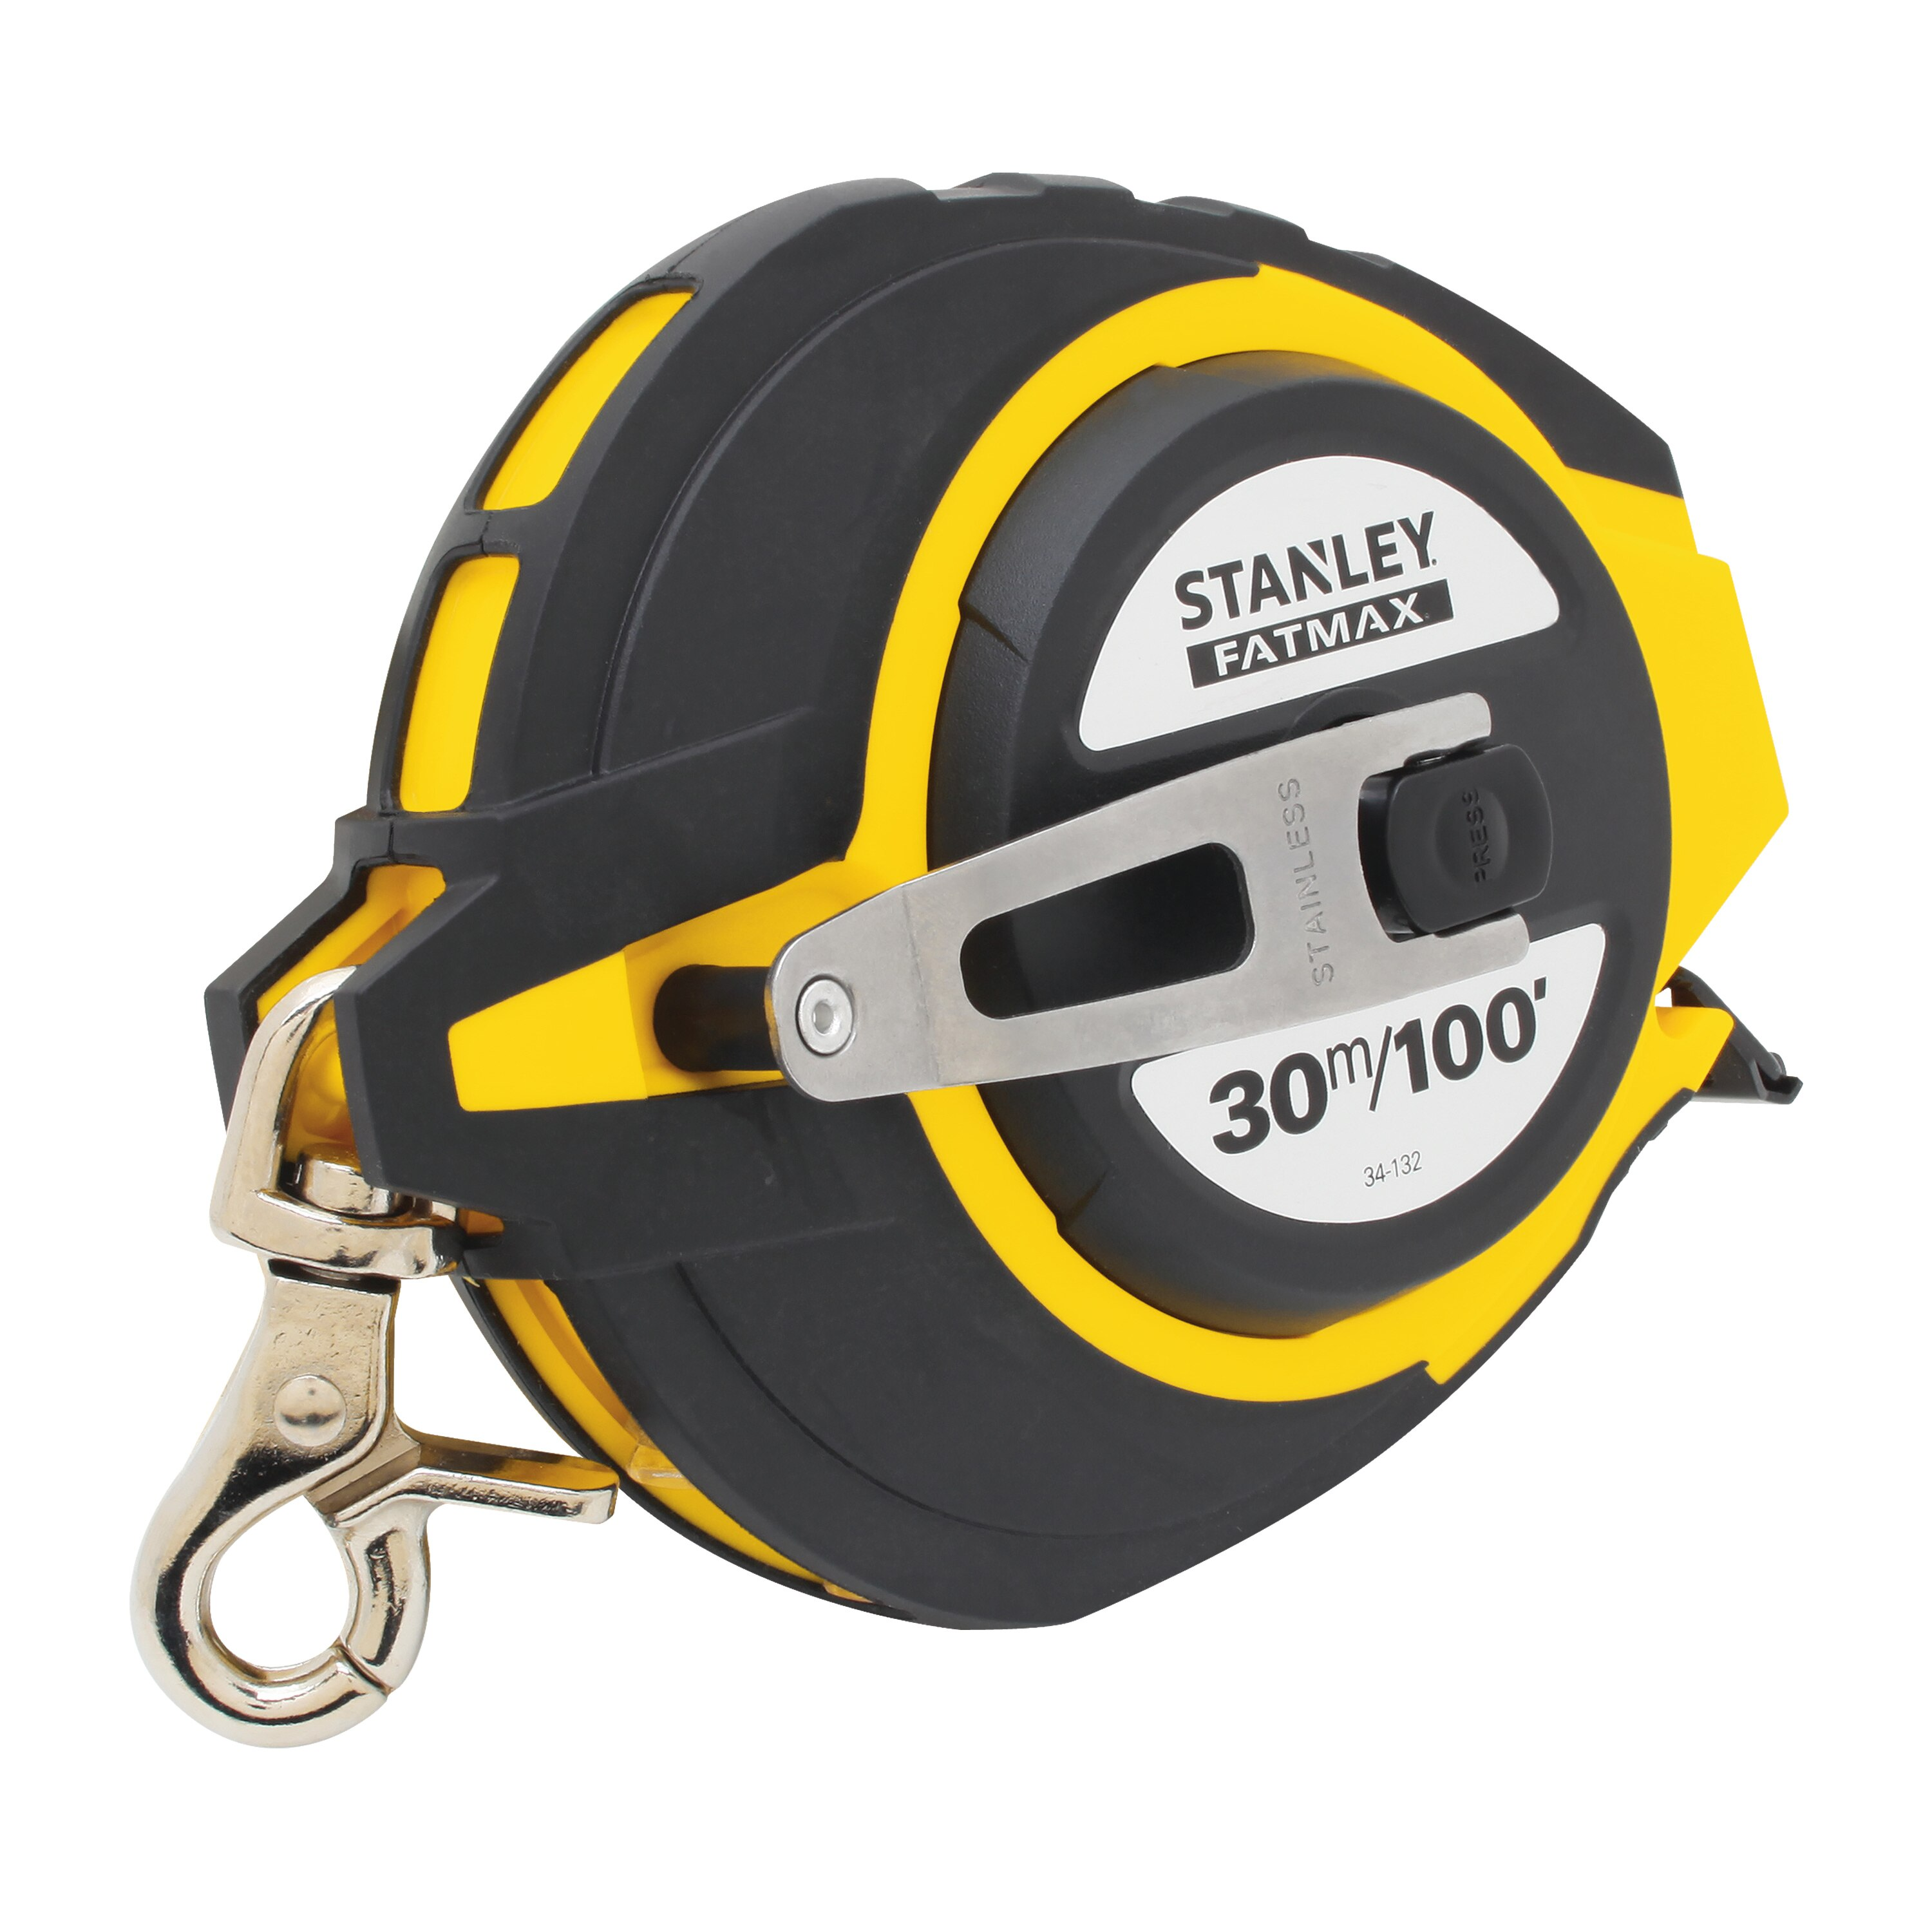 Stanley Tools - 30m100 ft FATMAX Steel Long Tape - 34-132